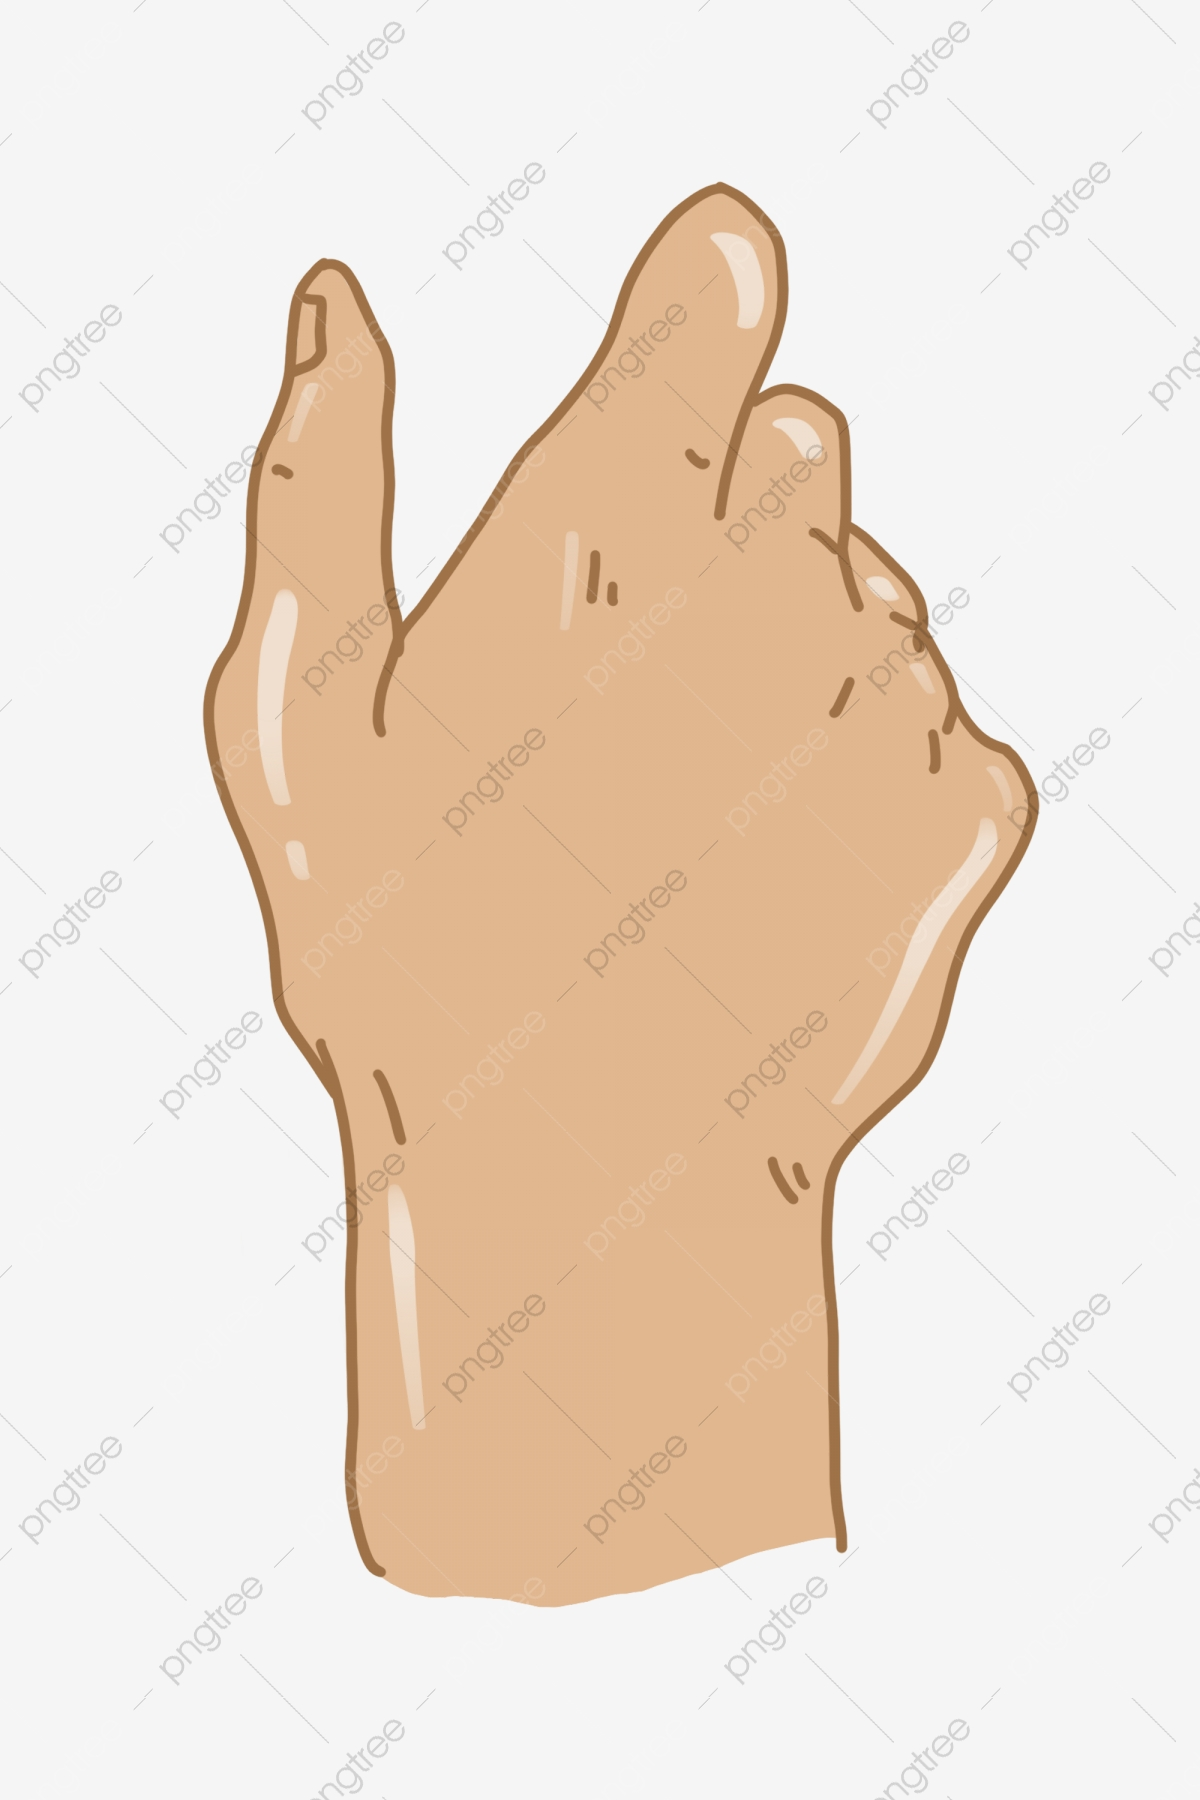 Finger Grabbing Action Grab Something Finger Movement Back Of The Hand Png Transparent Clipart Image And Psd File For Free Download Right human hand showing letter c, grabbing hand free png. https pngtree com freepng finger grabbing action 4532312 html